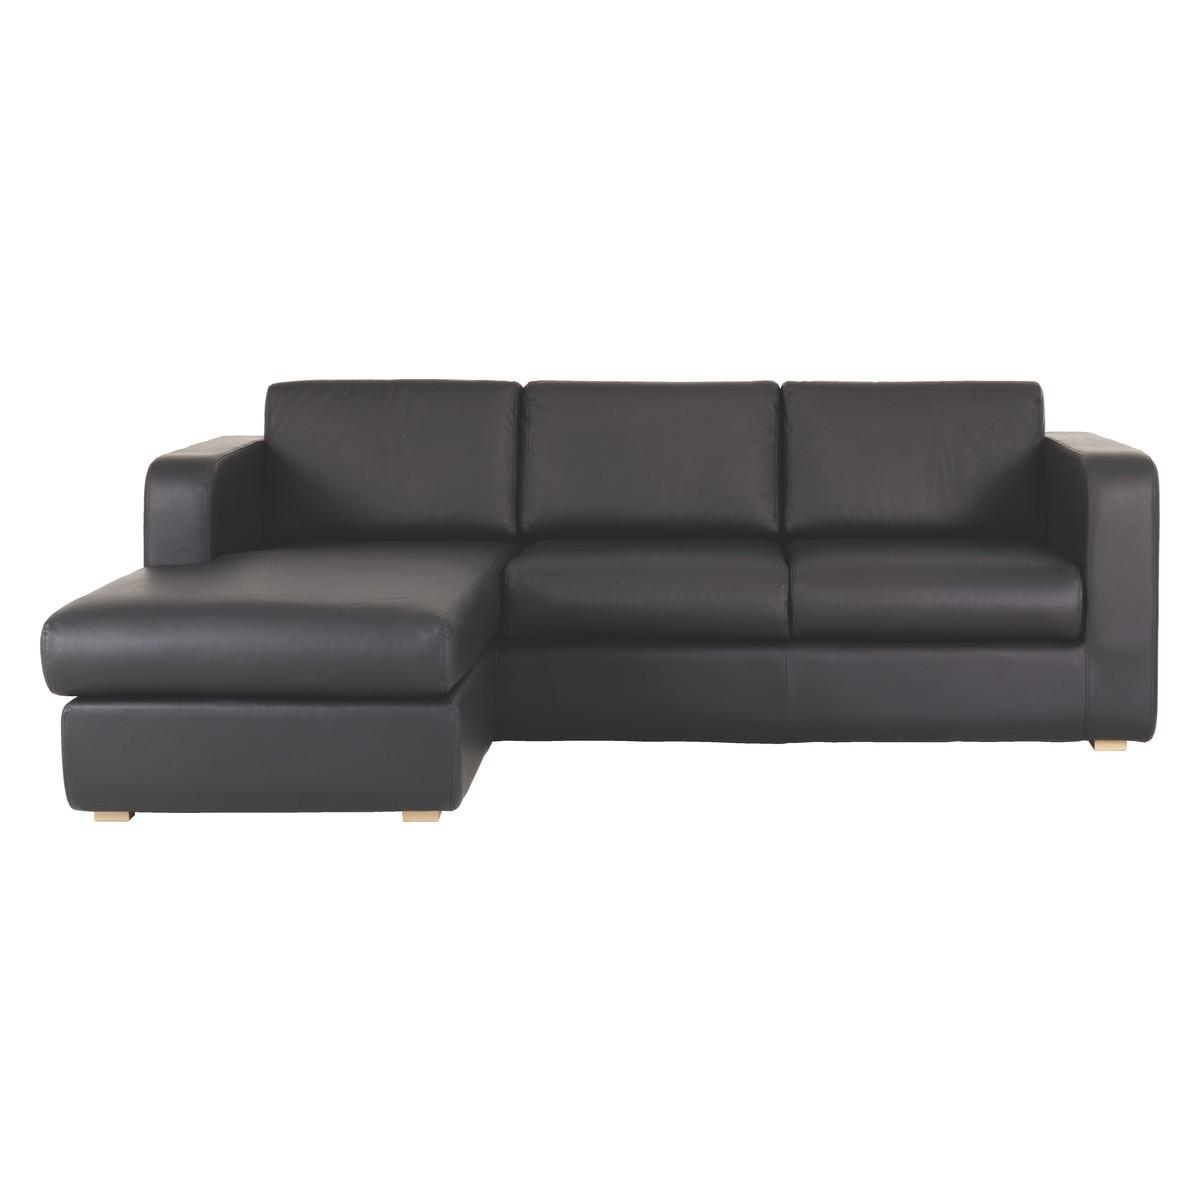 Sofas: Chaise Sofa Bed | Corner Lounge With Sofa Bed & Chaise For Corner Sofa Bed Sale (Image 20 of 20)